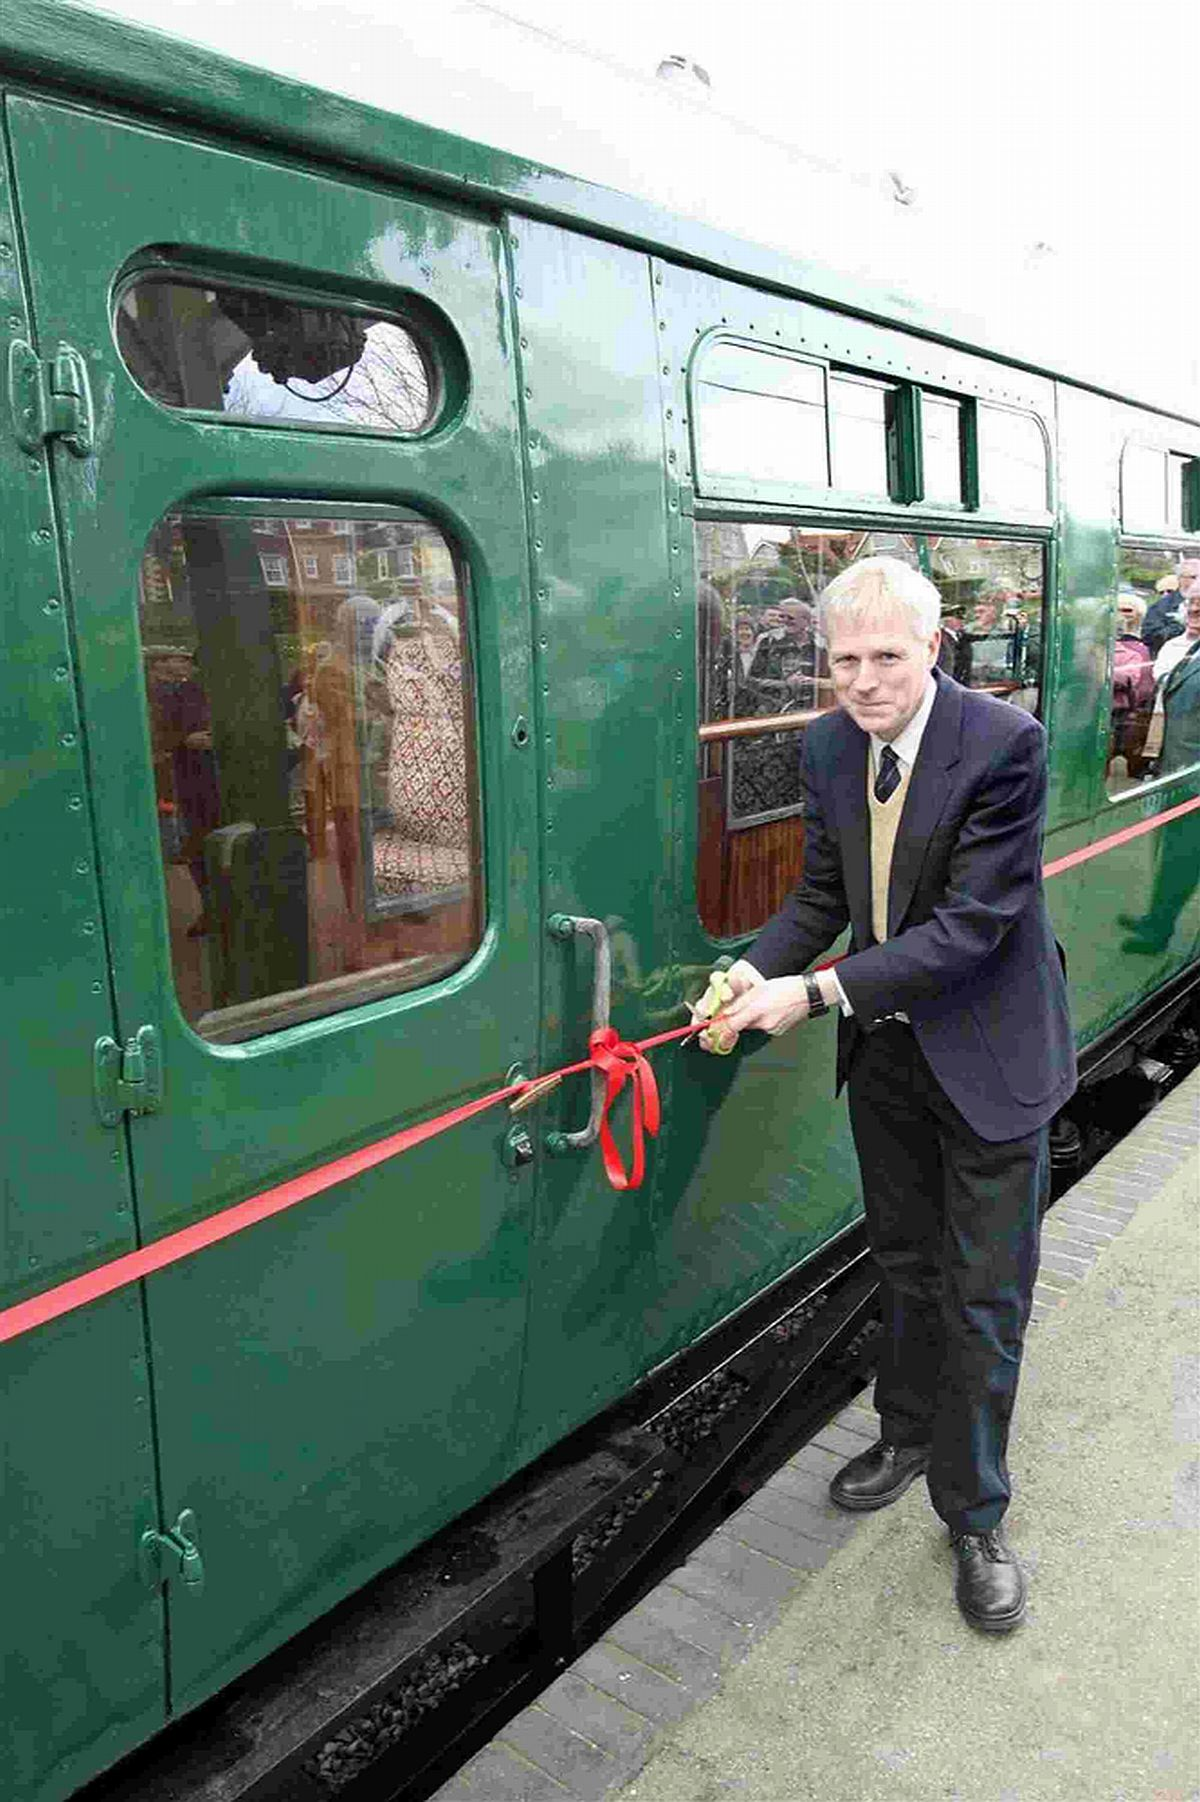 Classic carriage is welcomed back on track at heritage railway